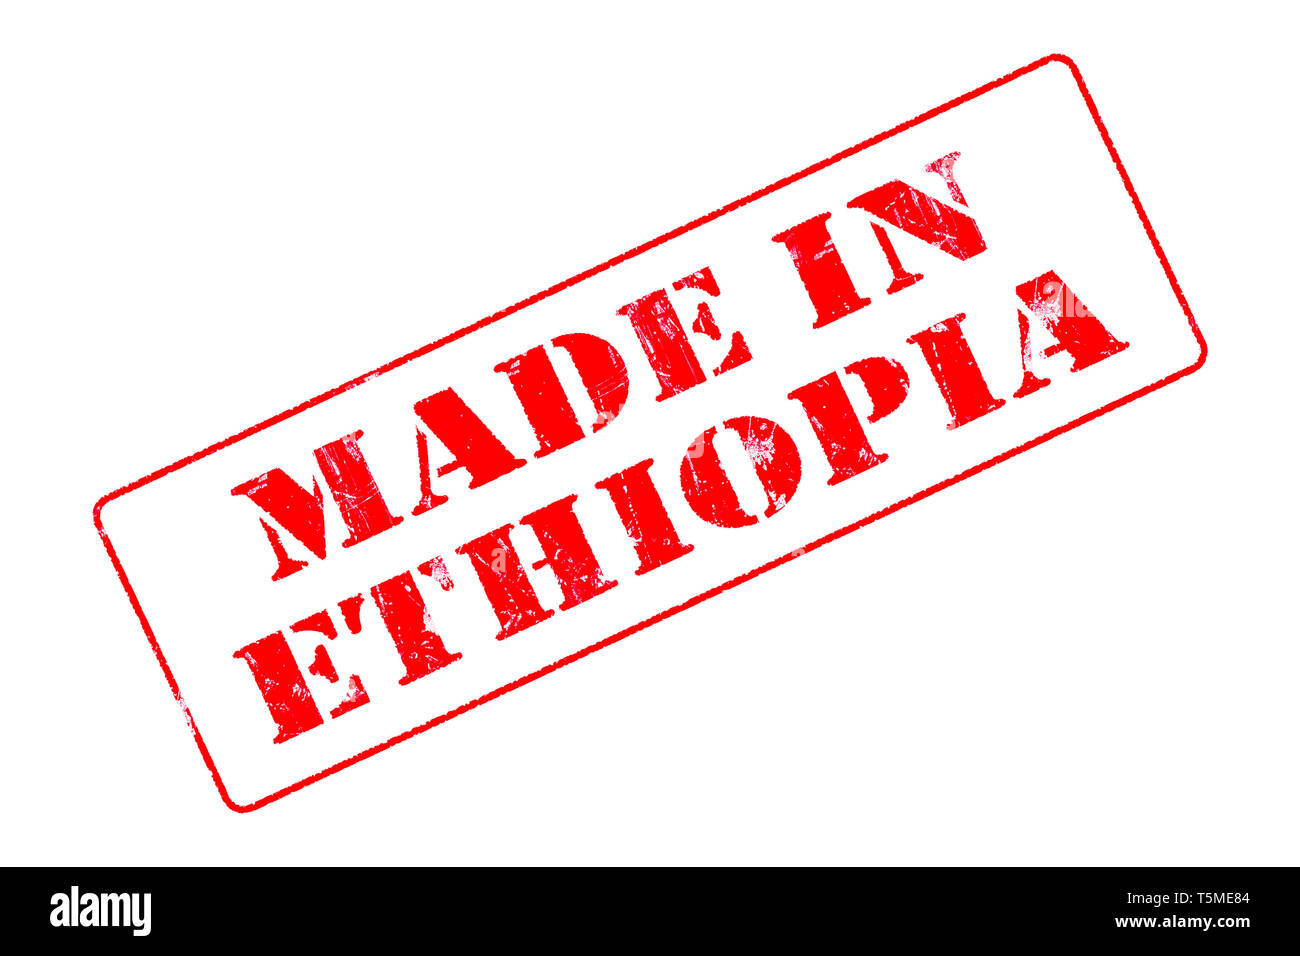 Rubber stamp with red ink on white background concept reading Made In Ethiopia - Stock Image